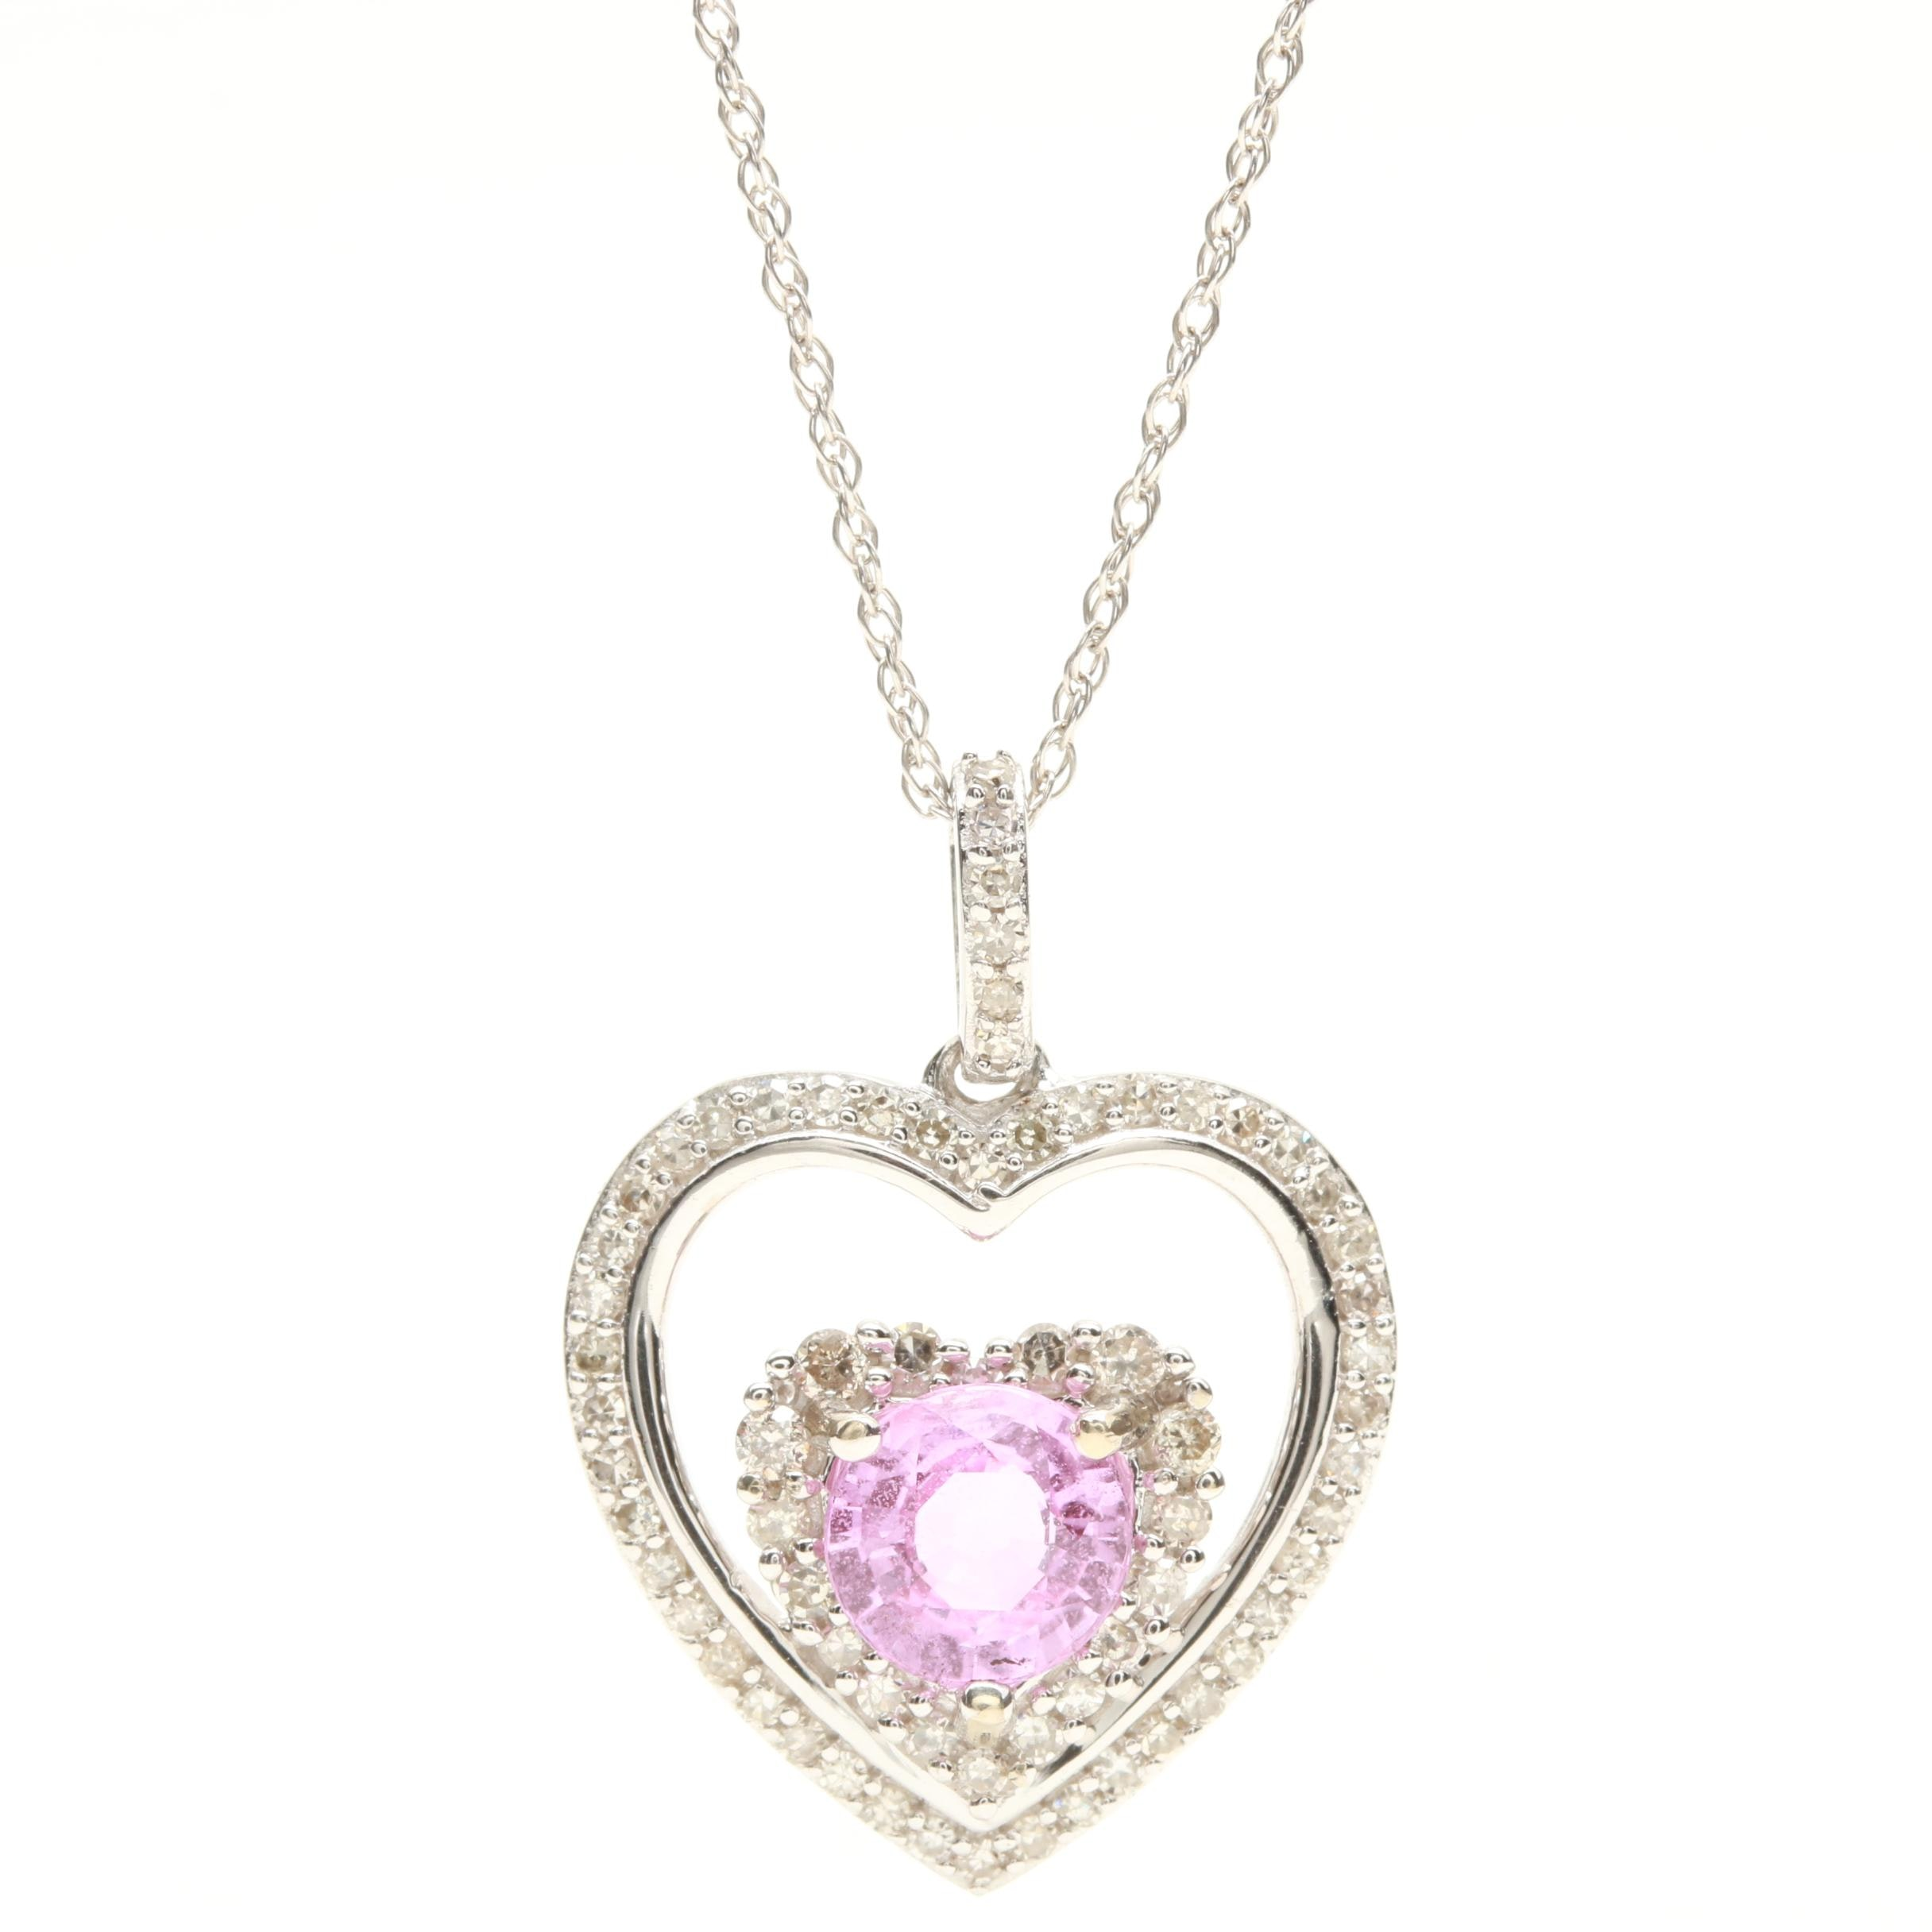 14K White Gold Pink Sapphire and Diamond Heart Pendant Necklace